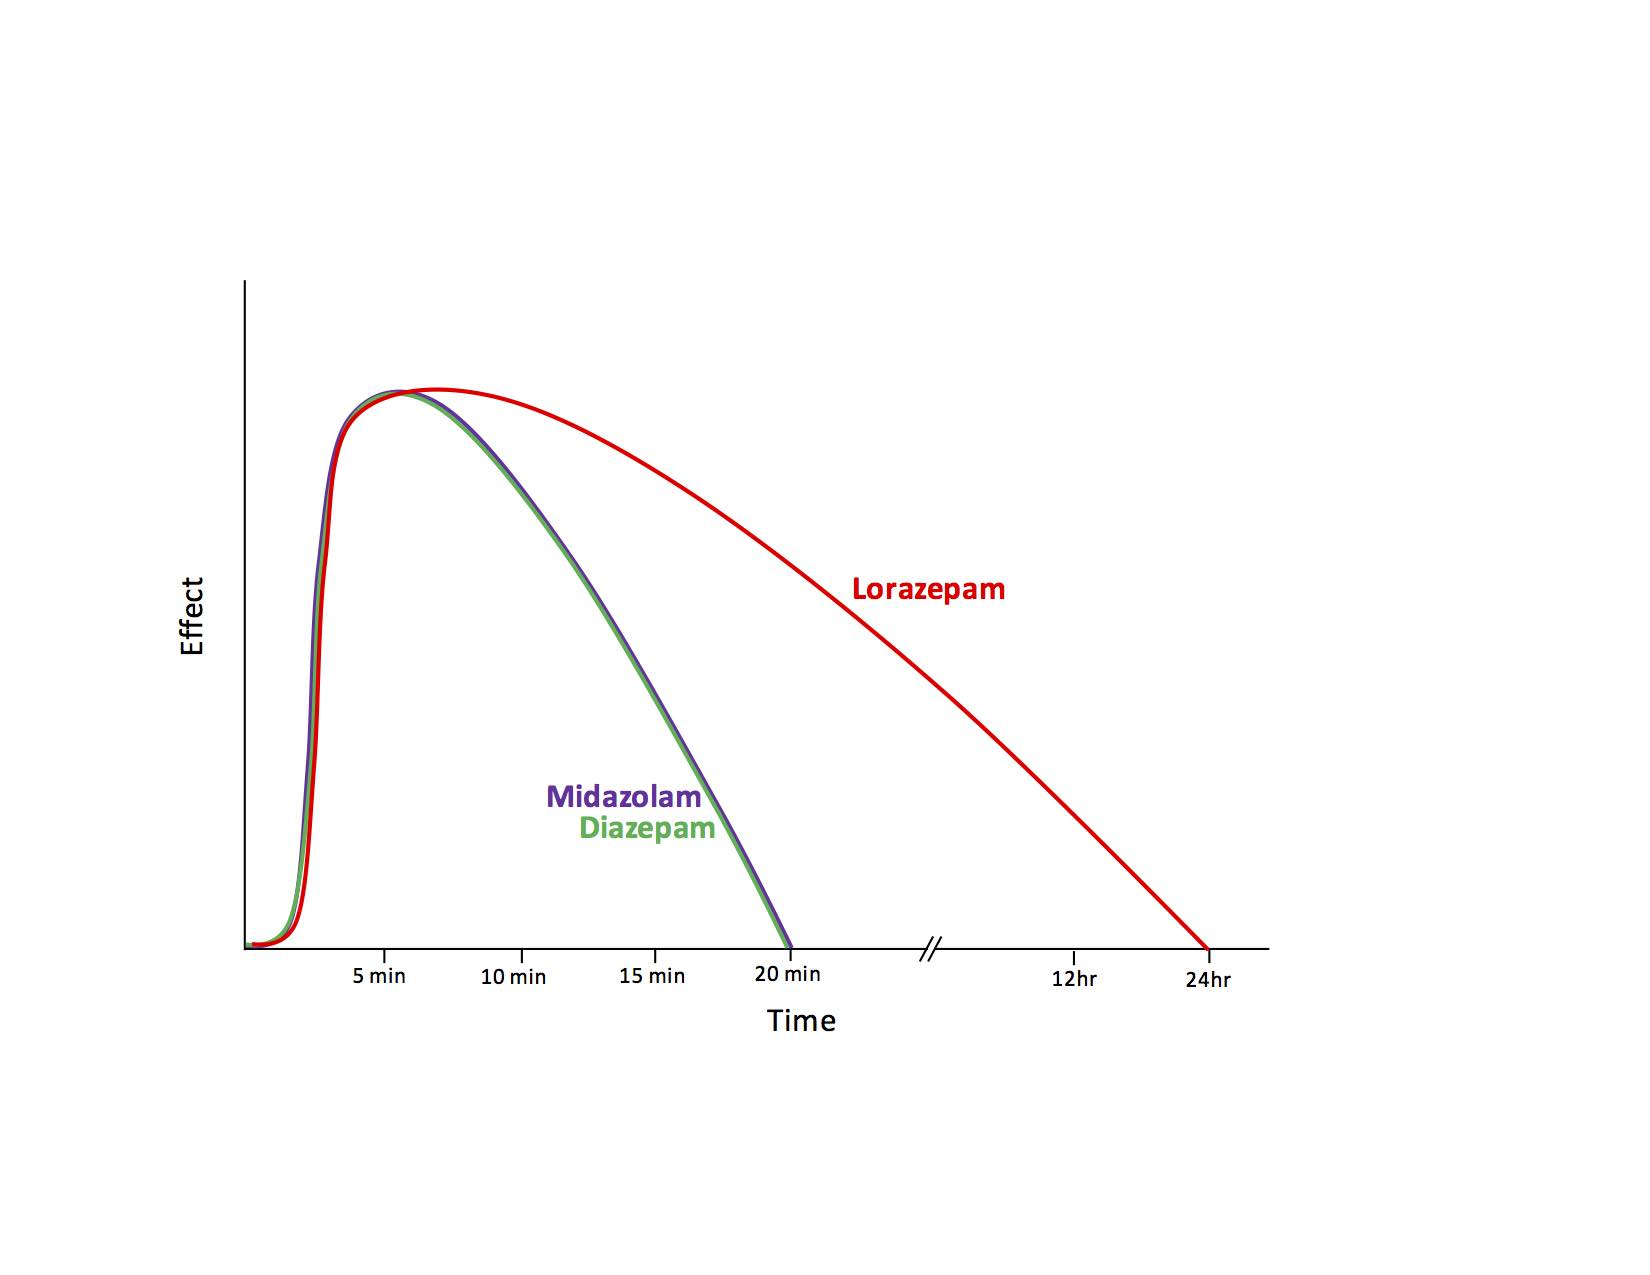 Graph 2. Time to effect and duration of action of IV benzodiazepines for anticonvulsant properties